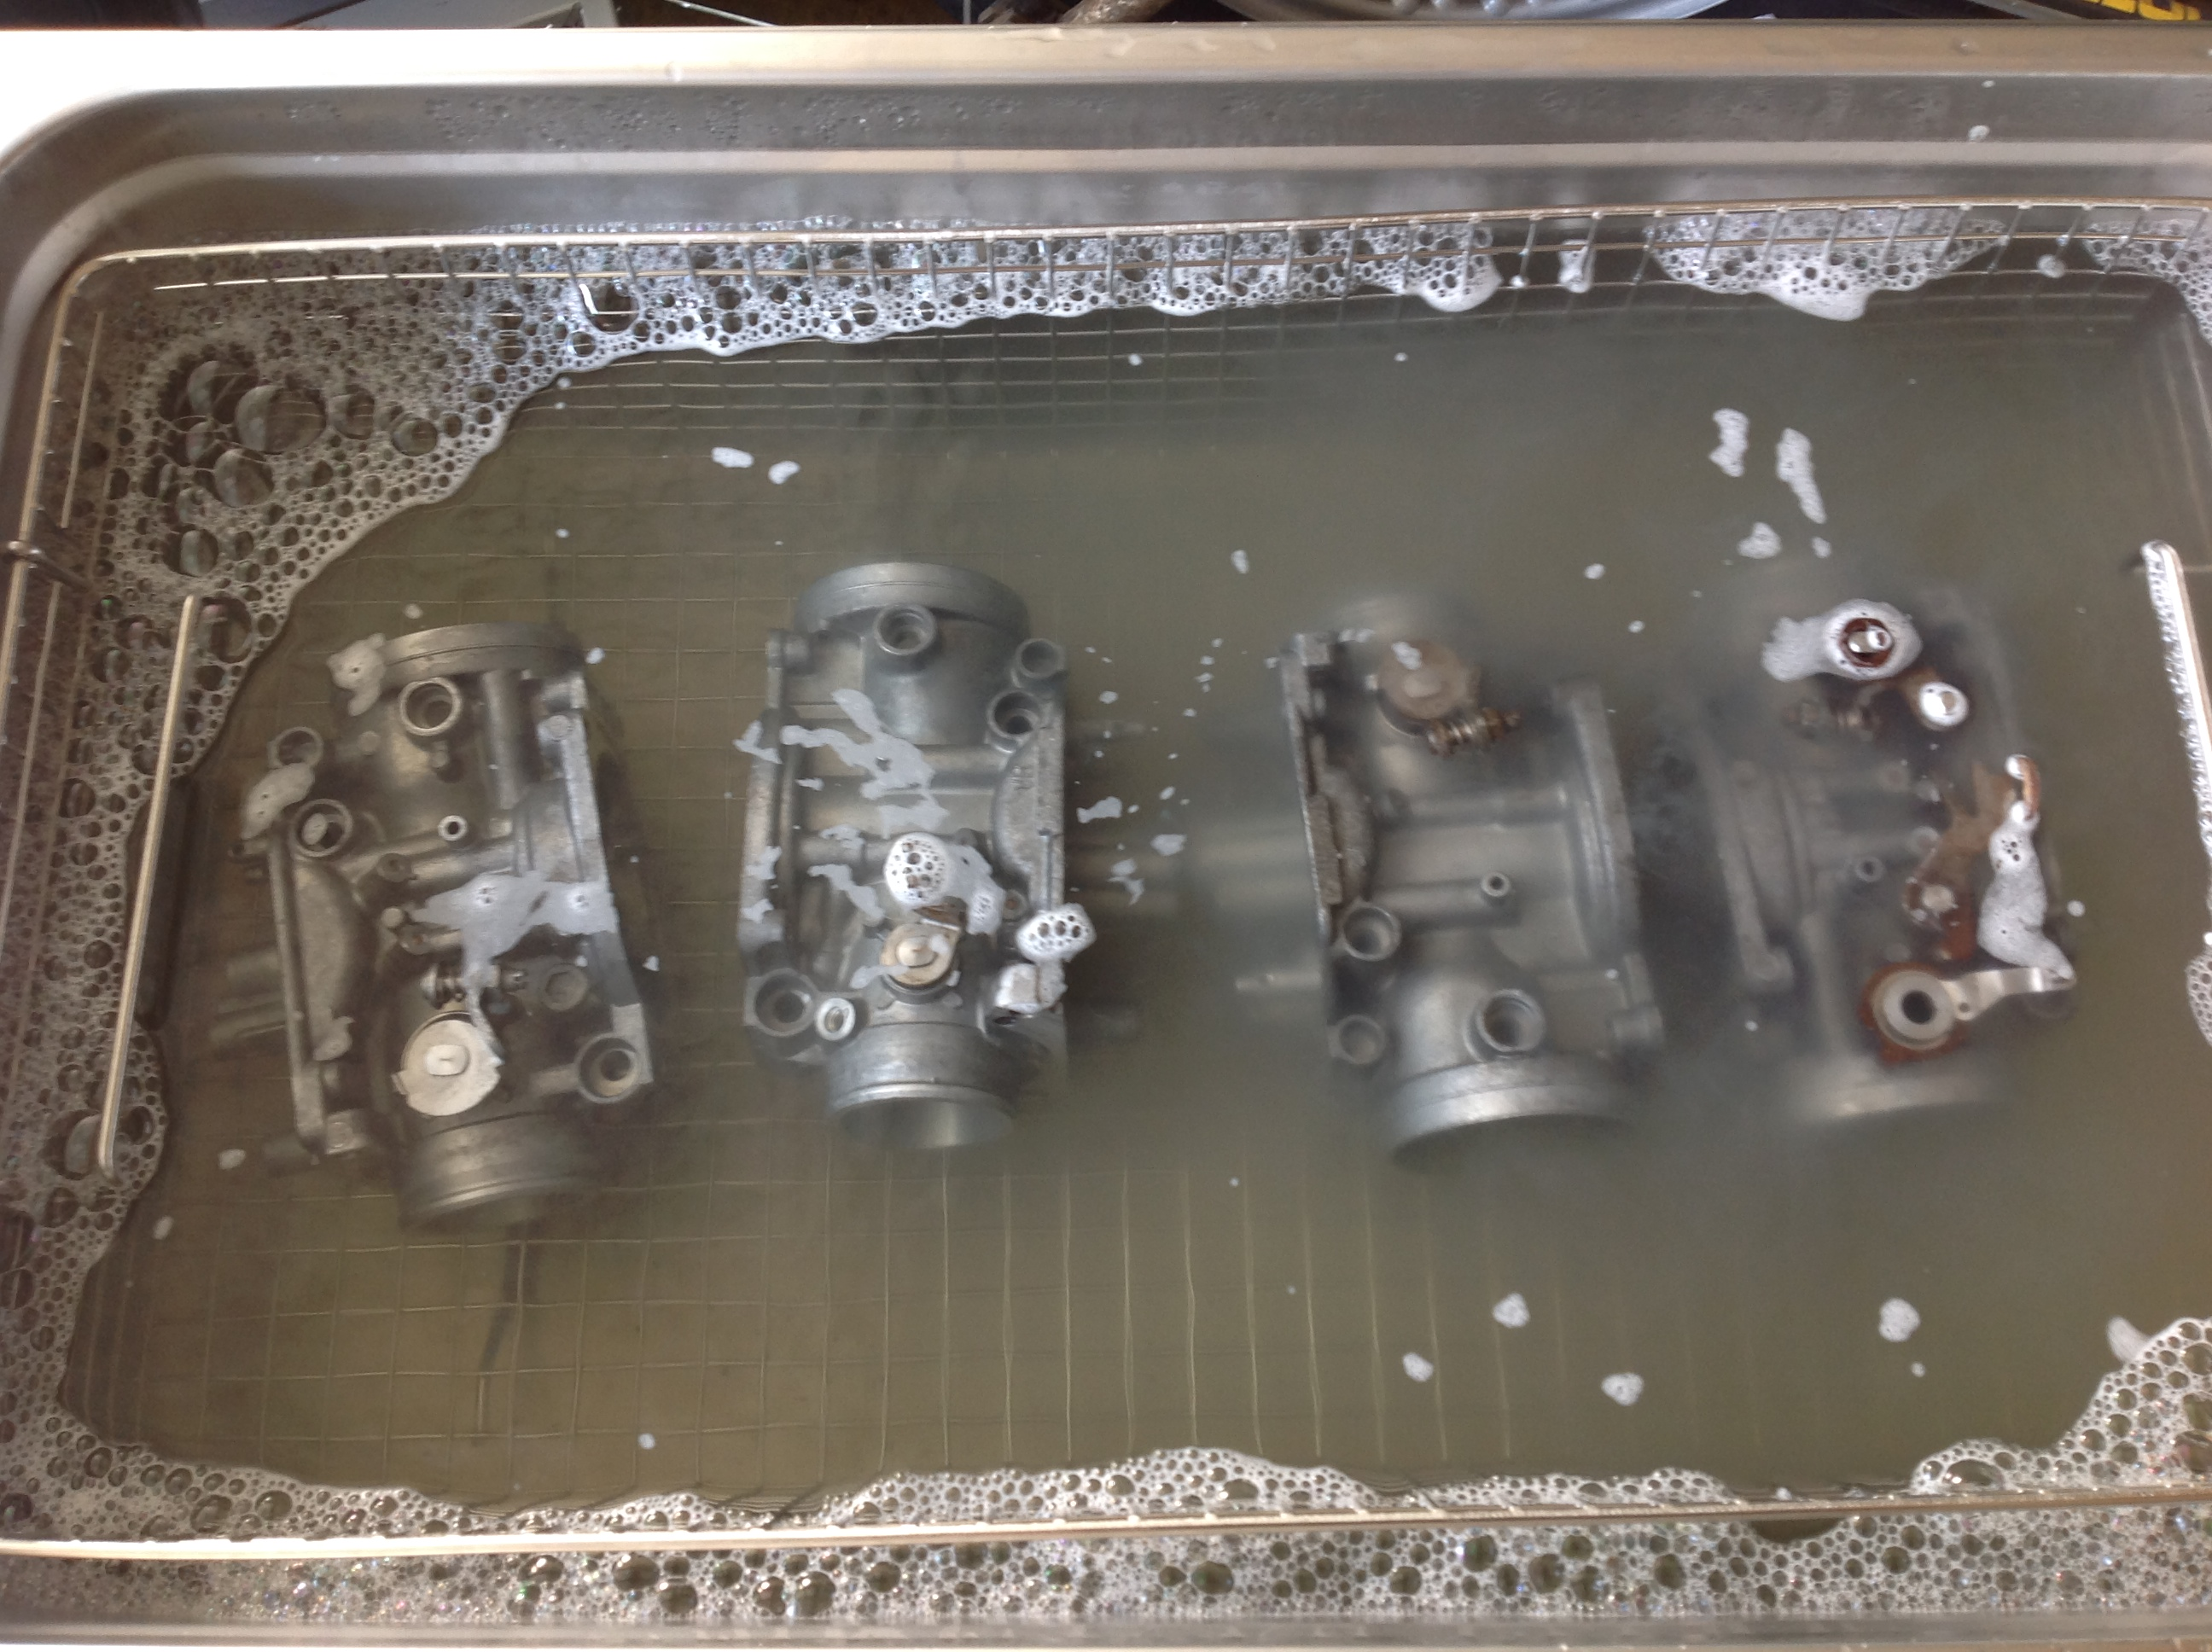 CBX 1000 Carb Bodies in Ultrasonic Cleaner